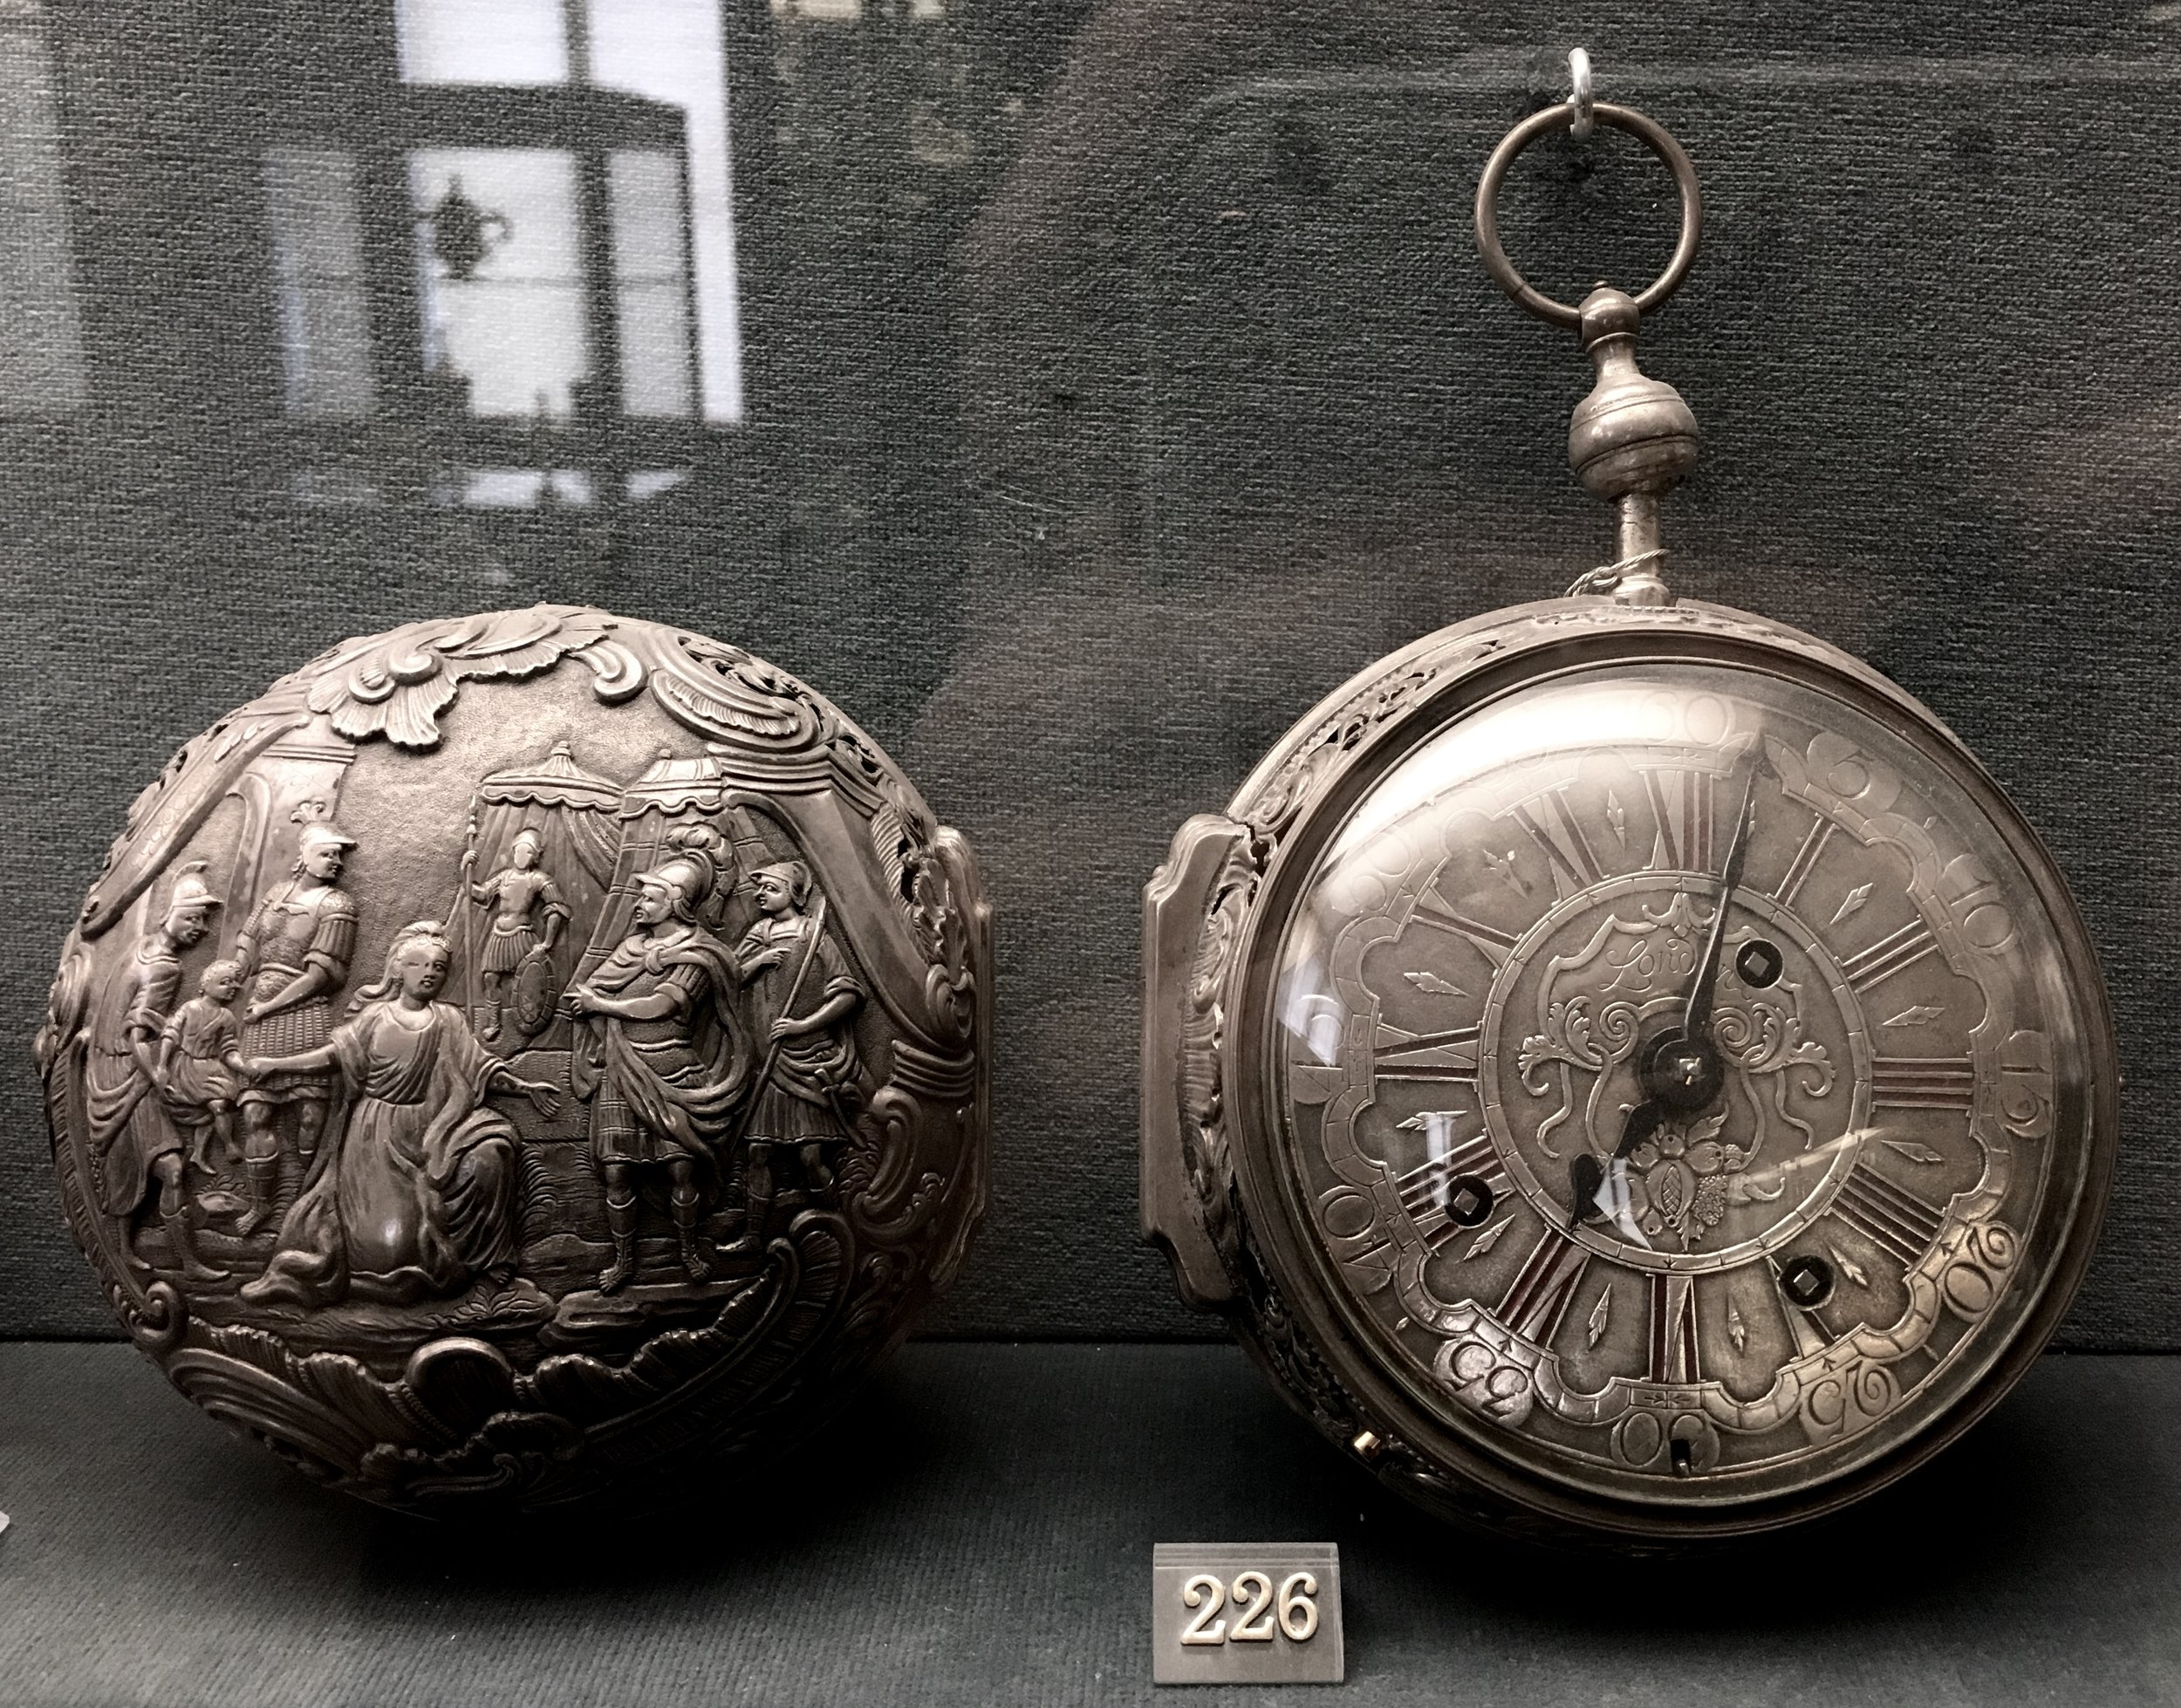 Silver cased quarter-striking coach watch with quarter-repeat. Made by Lorenz Beitelrock. Lublin, c.1760. The Ashmolean Museum, Eric Bullivant Bequest, 1974 [WA1974.216]